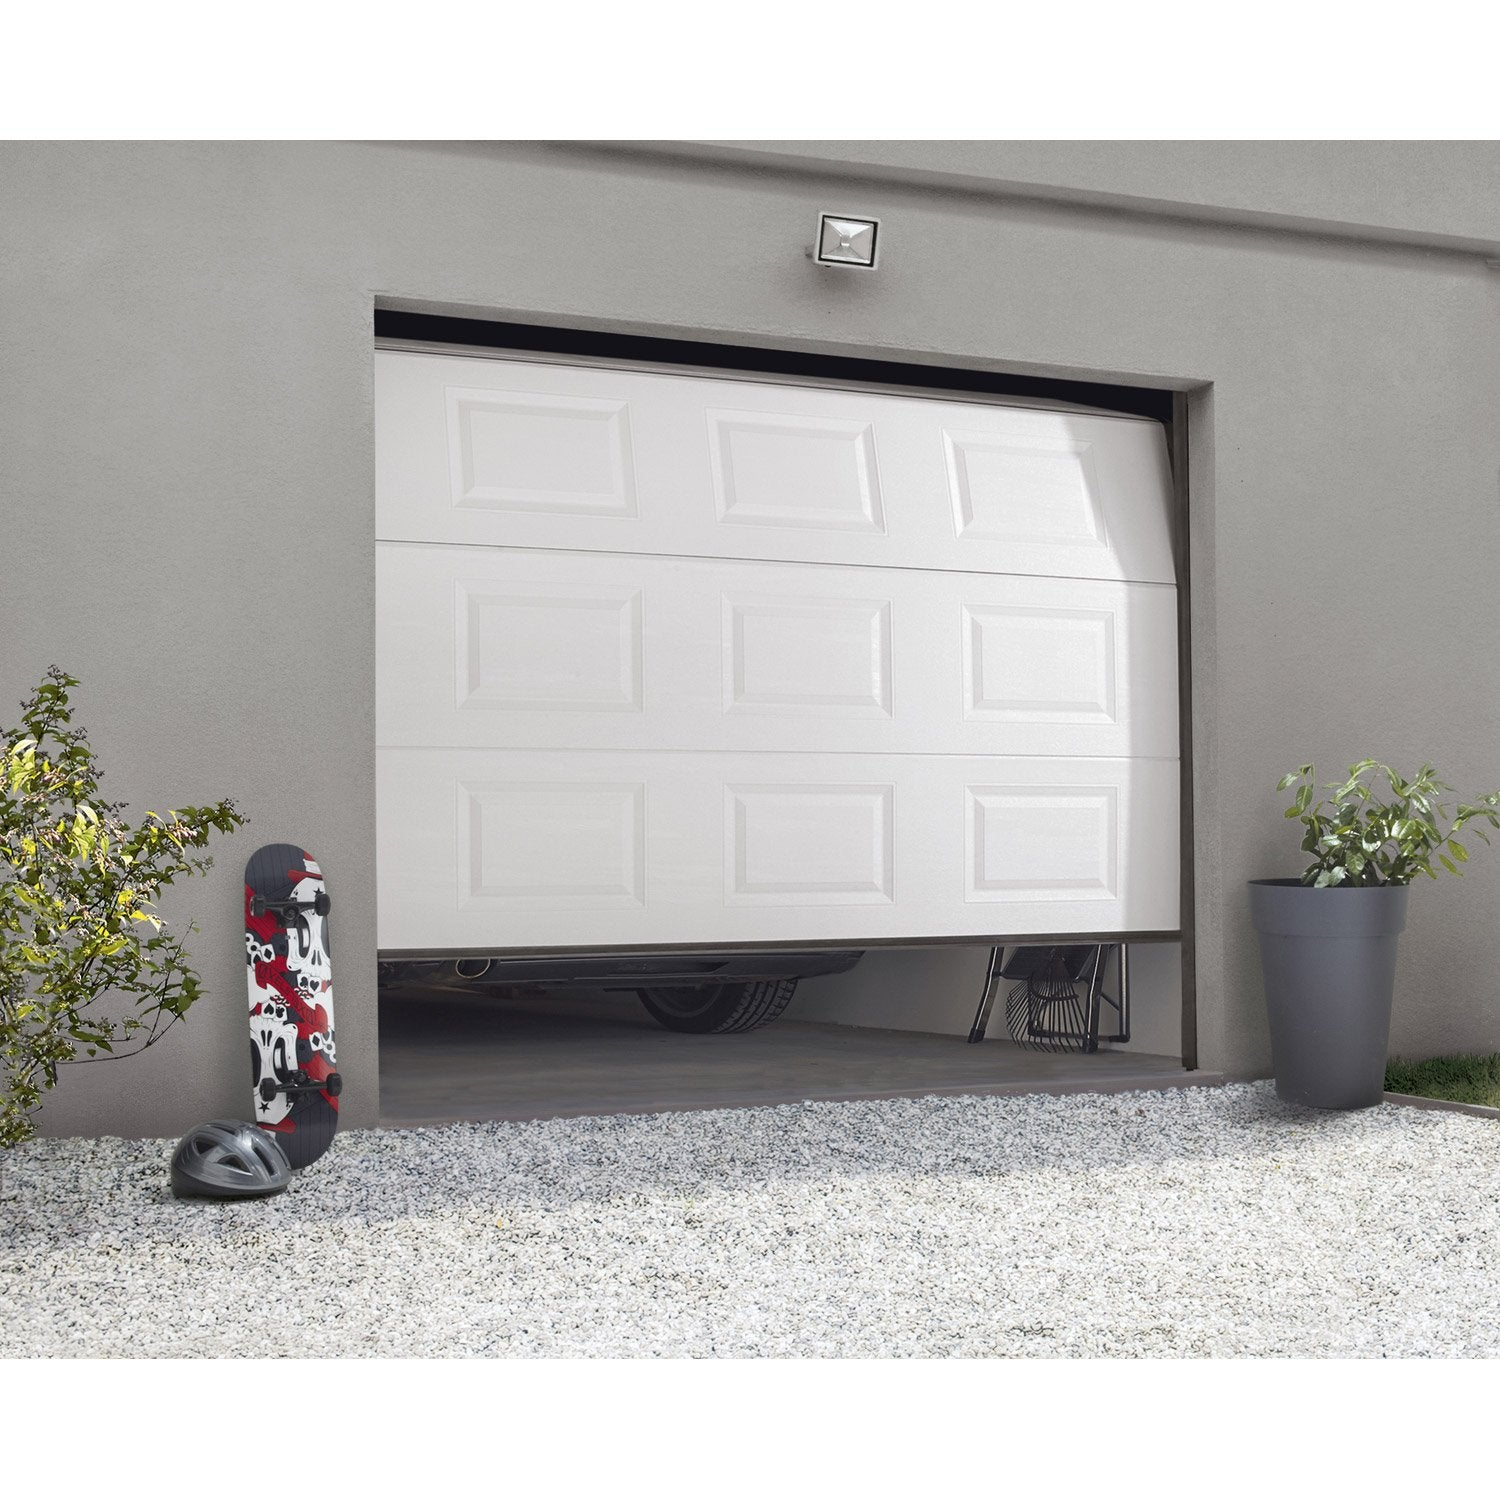 porte de garage sectionnelle motoris e artens essentiel h ForPorte De Garage Sectionnelle 220 X 200